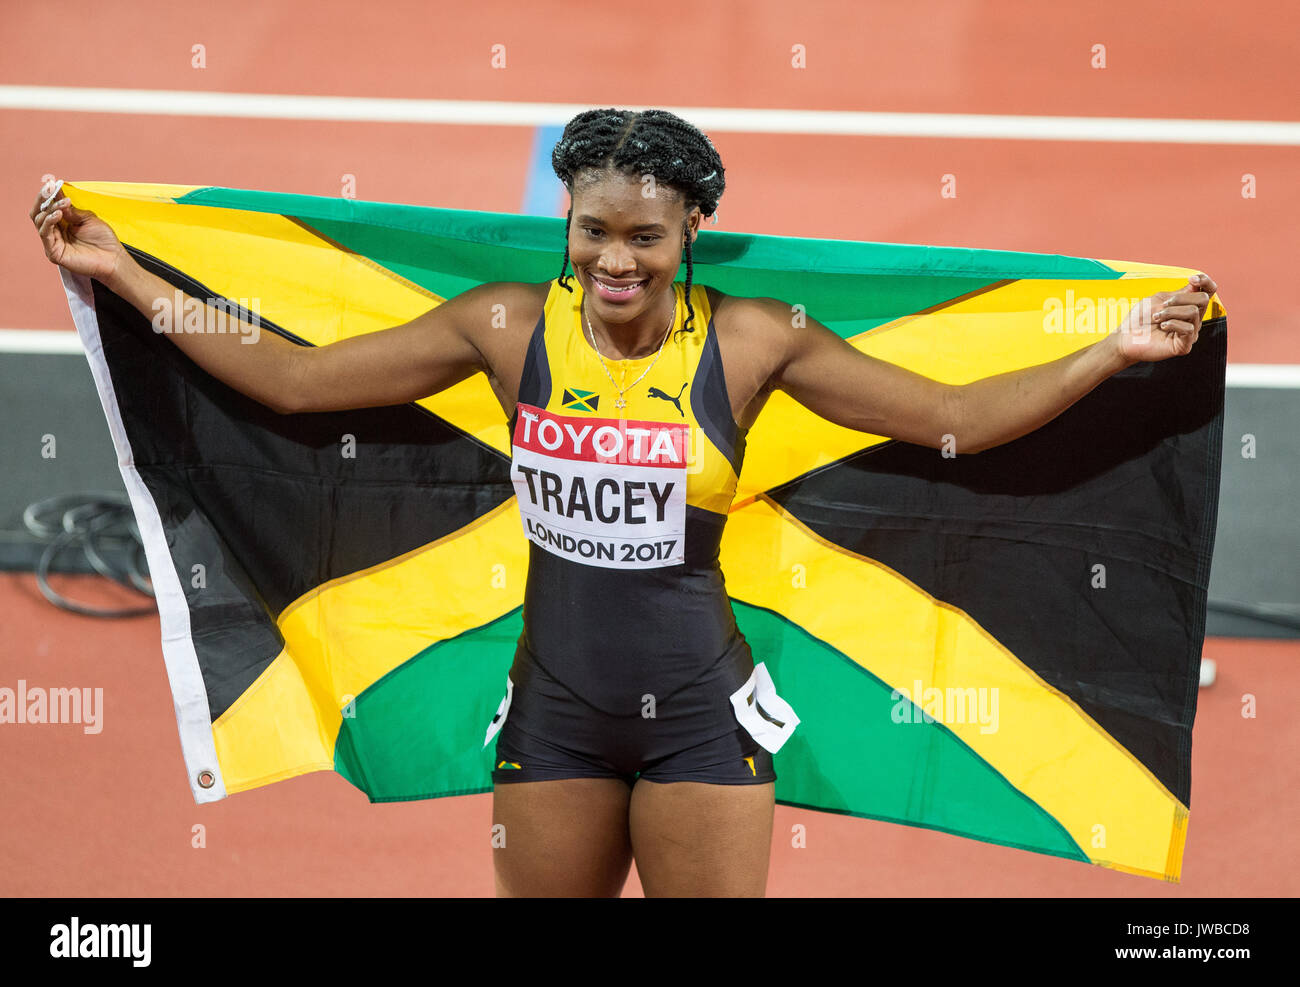 Bronze Medalist RISTANANNA TRACEY of Jamaica pose with the national flag after 3rd in the 400m Hurdles during the IAAF World Athletics Championships 2 - Stock Image